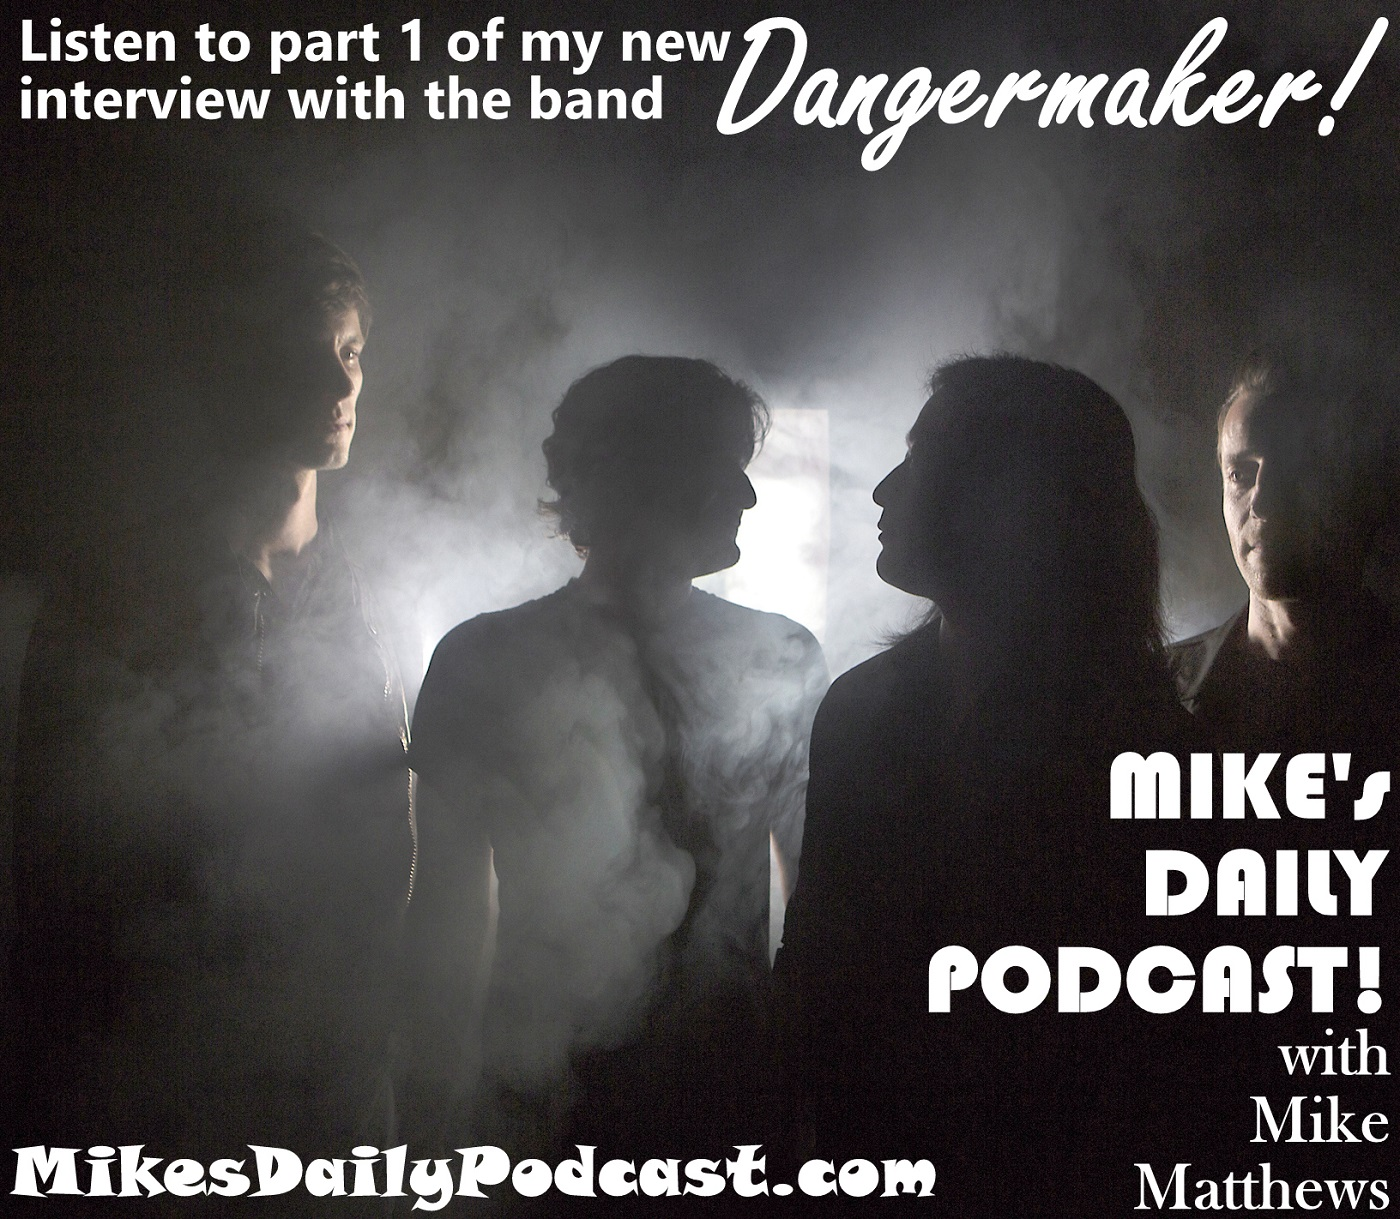 MIKEs DAILY PODCAST 933 Dangermaker Adam Burnett